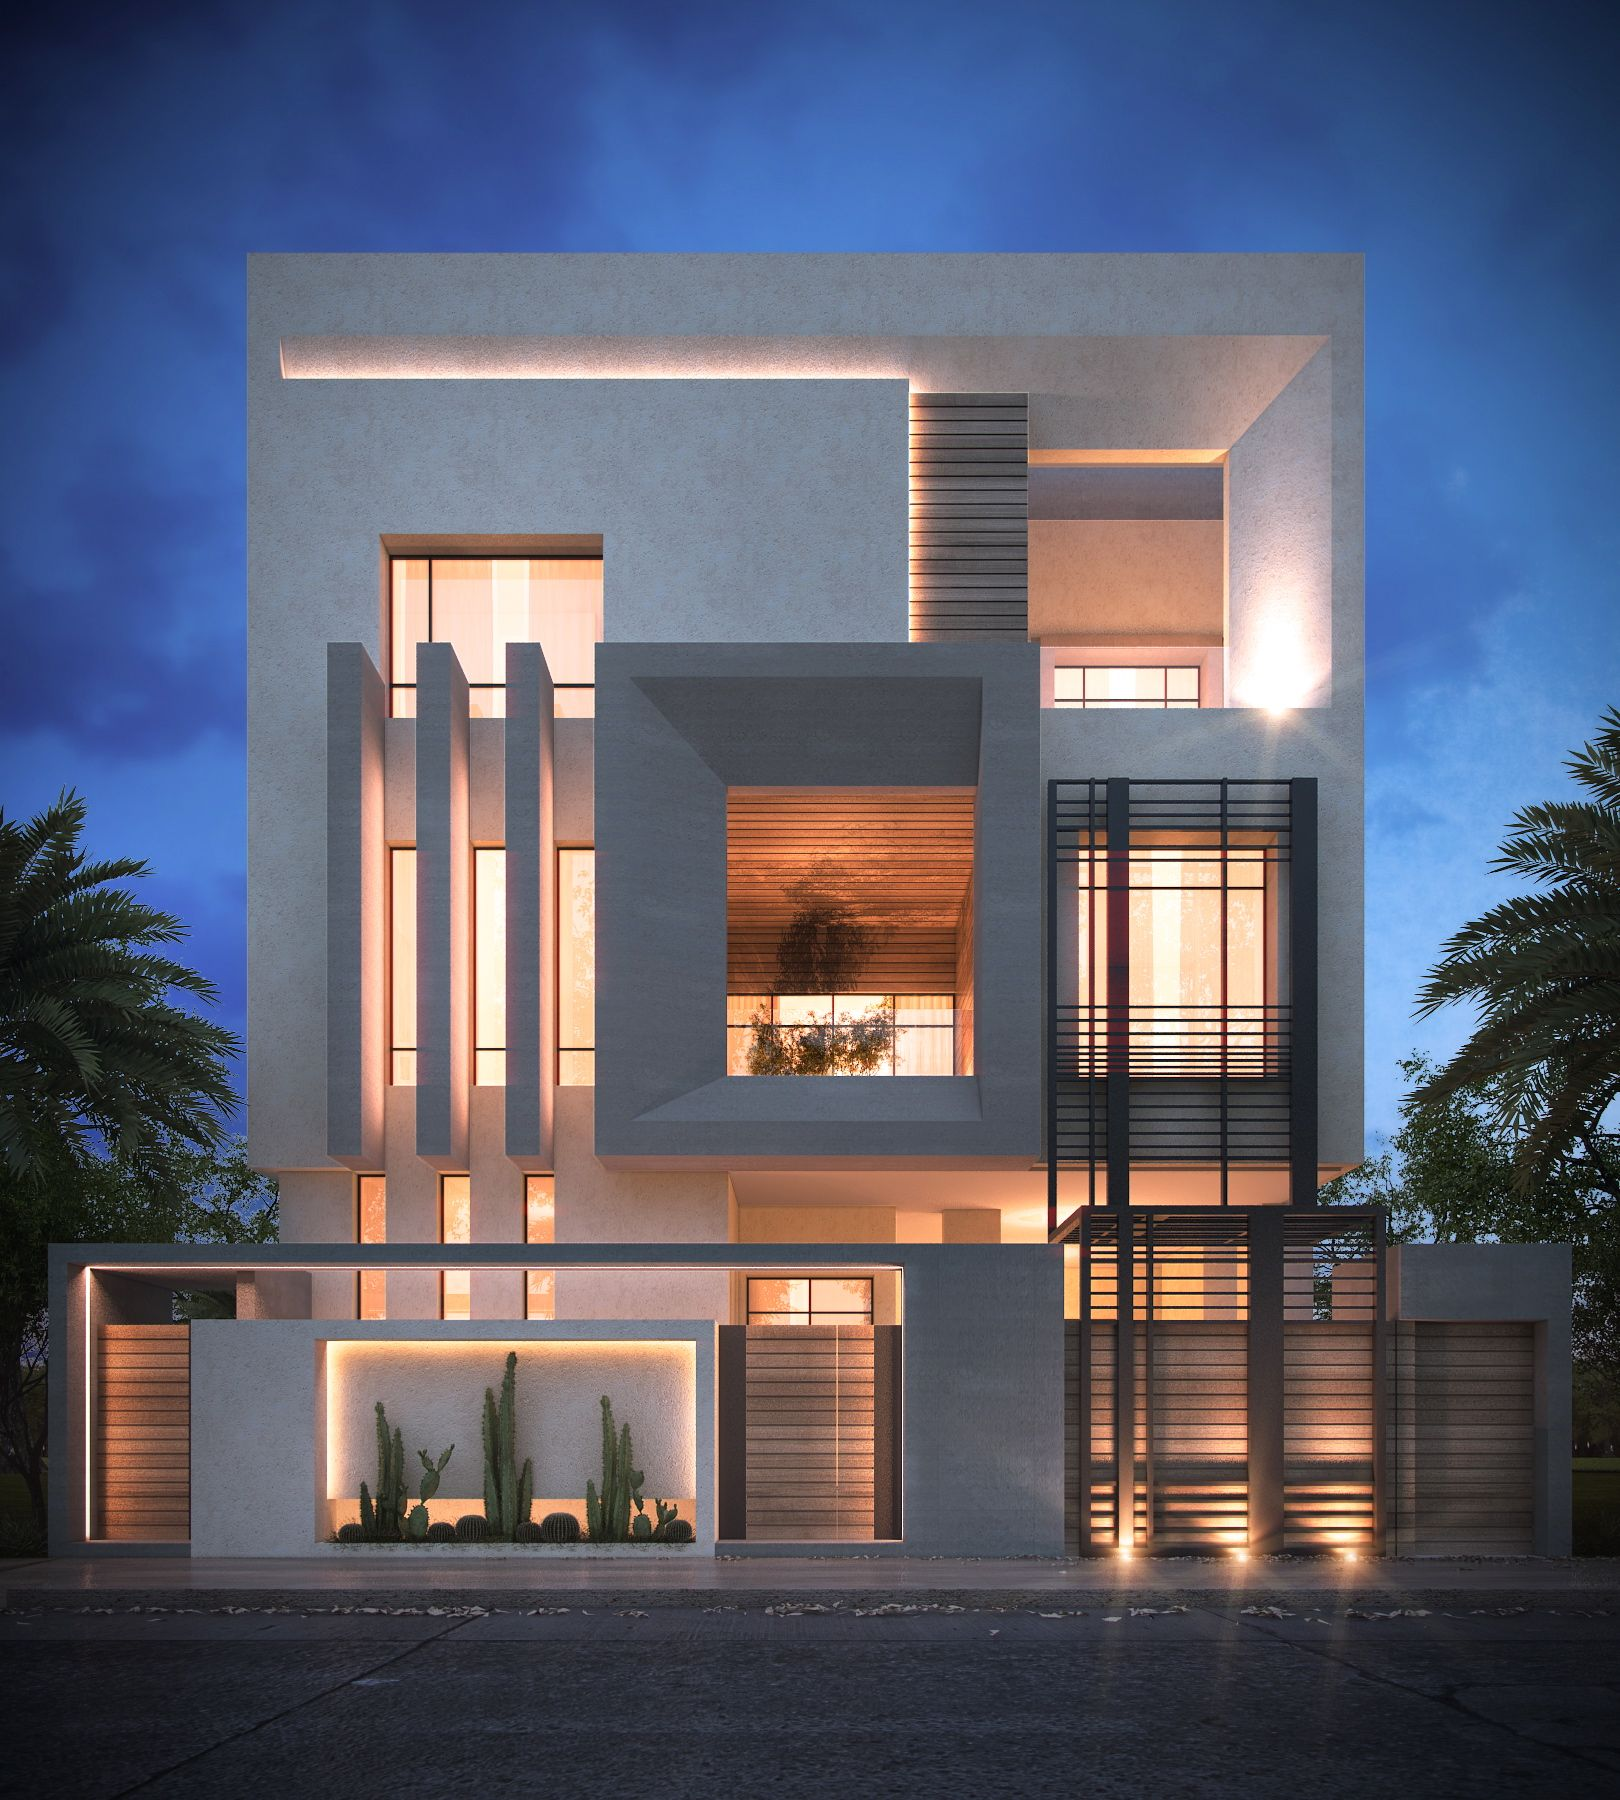 Private villa sarah sadeq architects kuwait modern for House design modern style